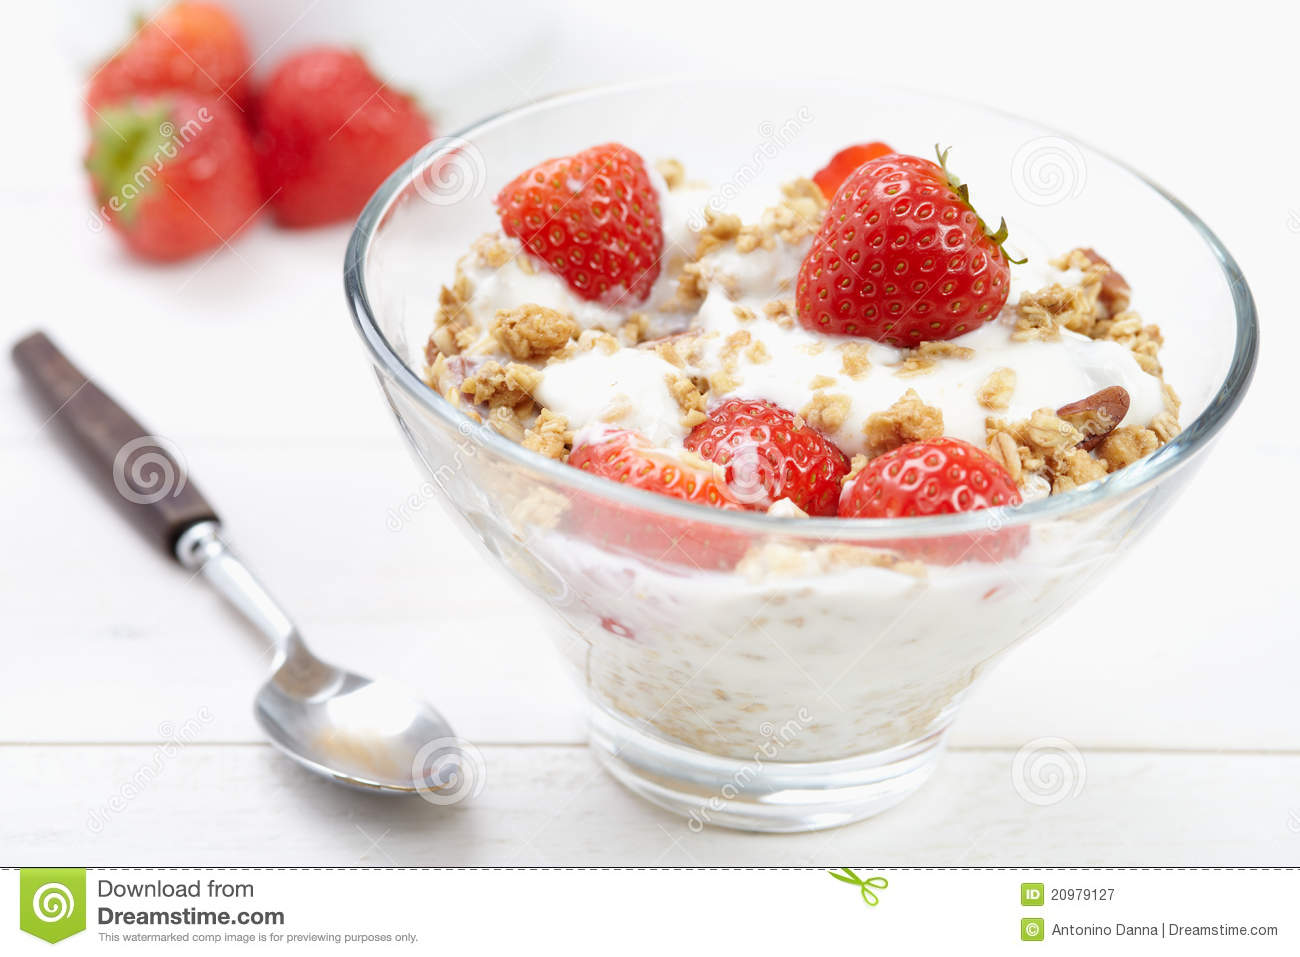 Yogurt And Cereal Royalty Free Stock Photography - Image: 20979127